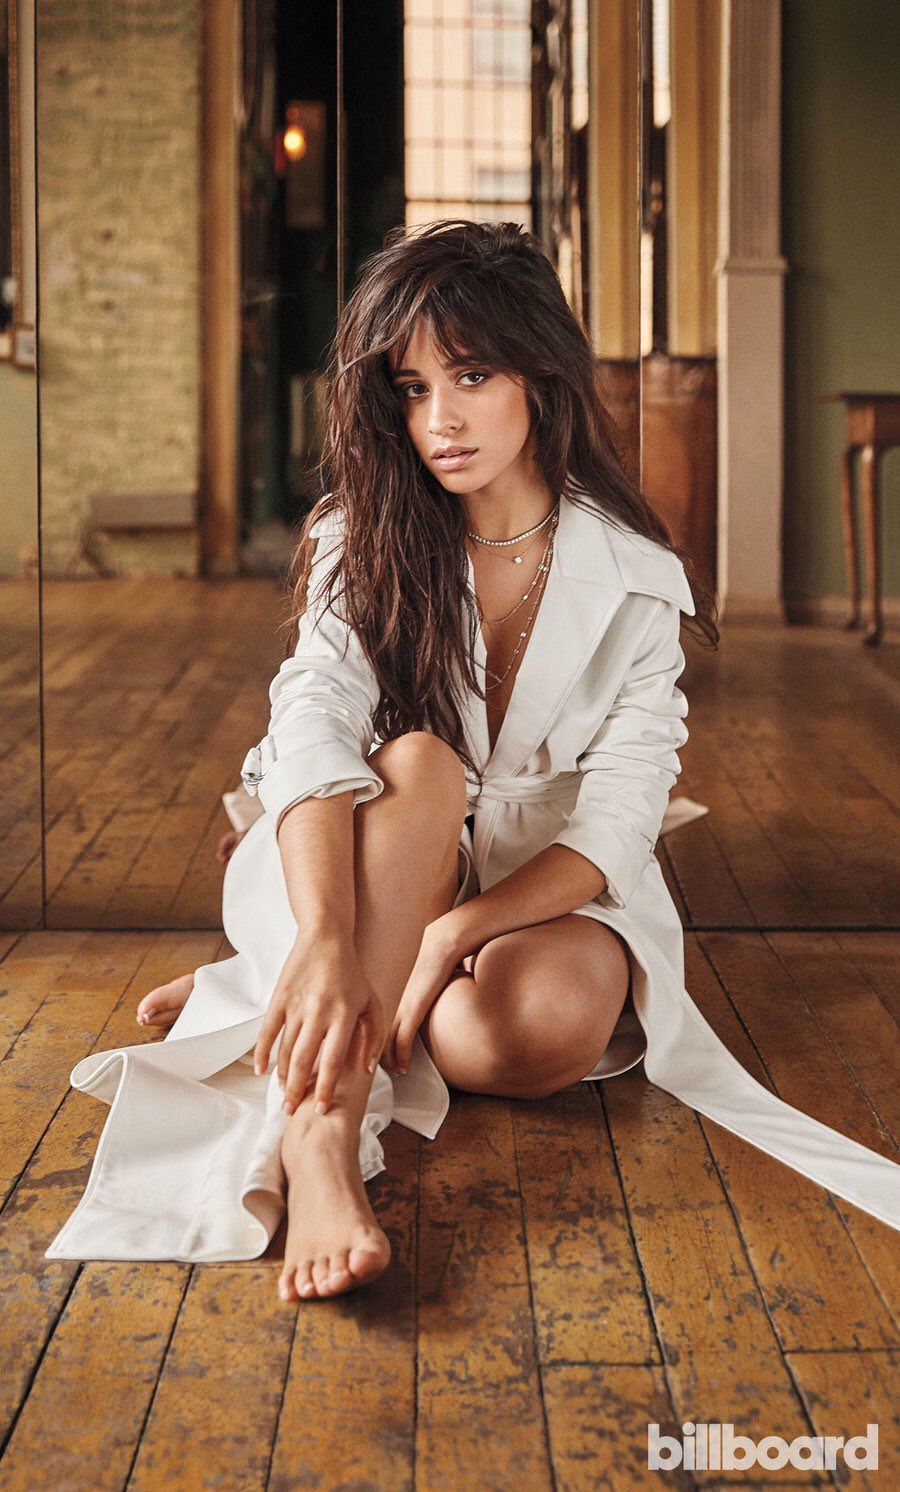 Billboard: Happy birthday, Camila_Cabello!